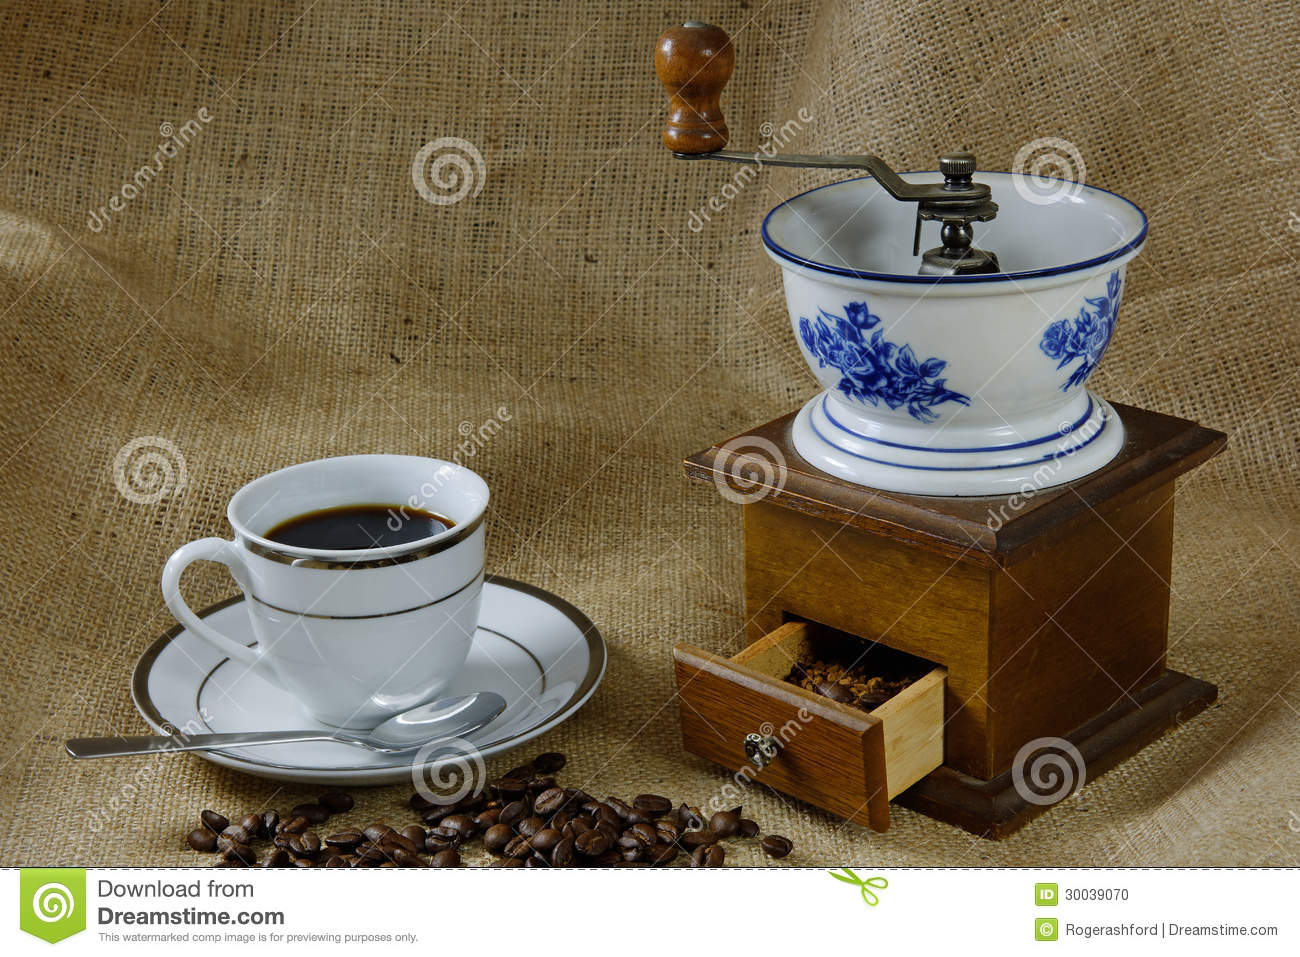 tasse de caf avec un moulin caf antique photo stock. Black Bedroom Furniture Sets. Home Design Ideas